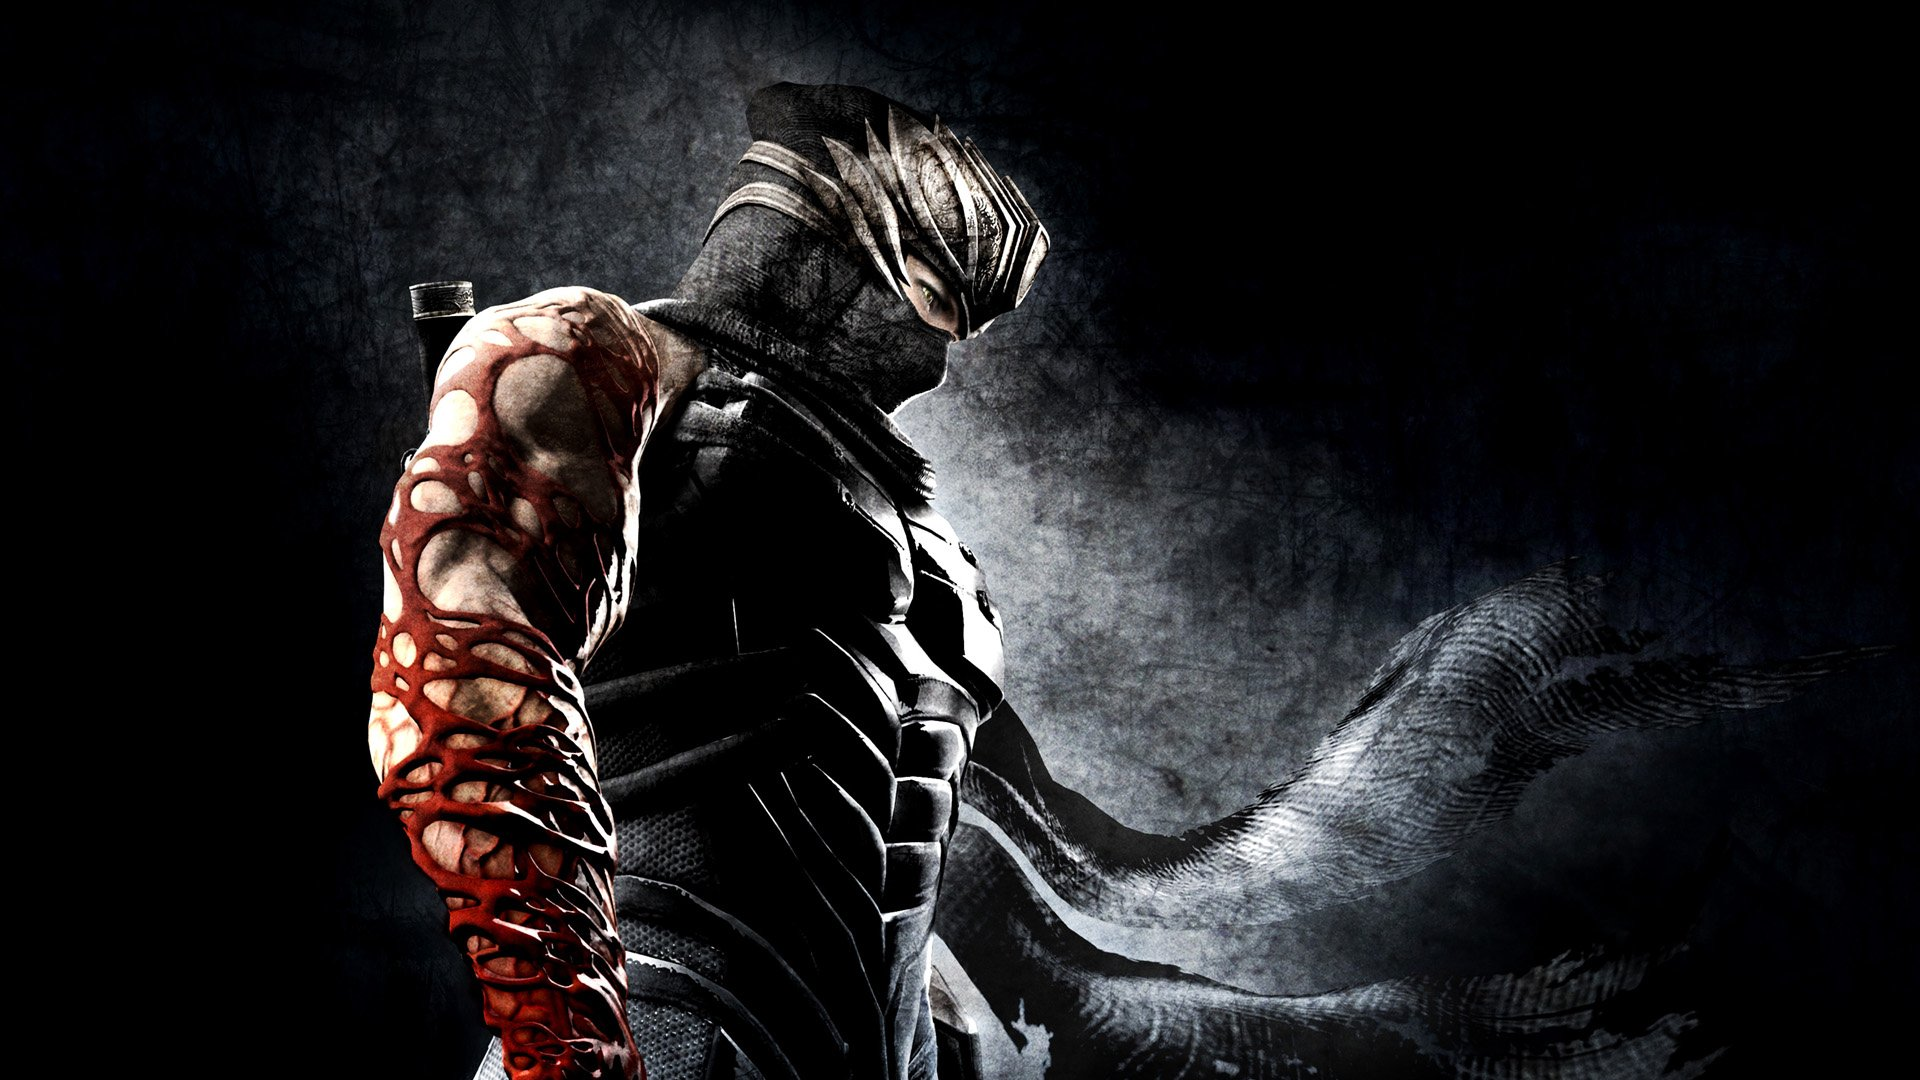 ... : This is the most badass videogame character ever, lol no contest